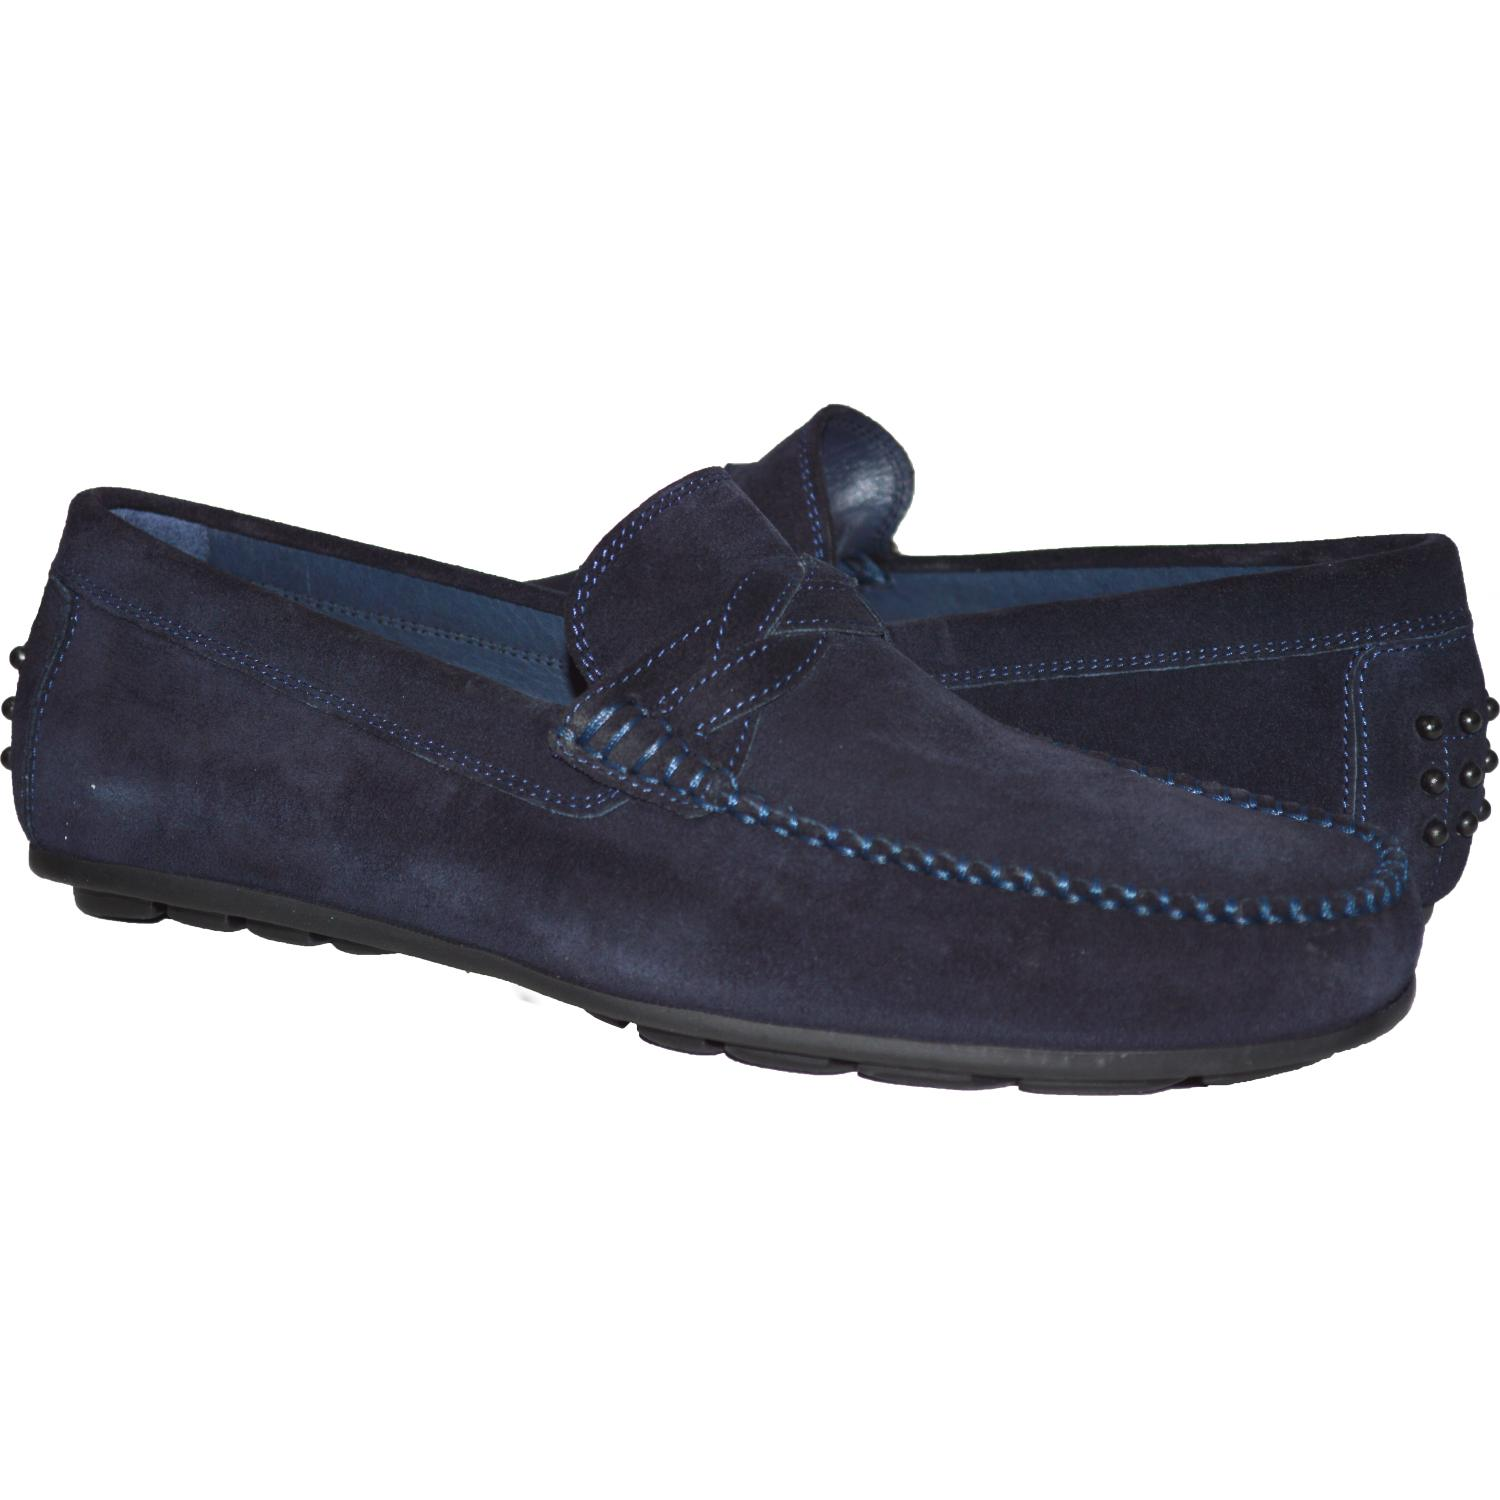 3411e524b94a2 Dino Blue Suede Driver Loafers | Paolo Shoes